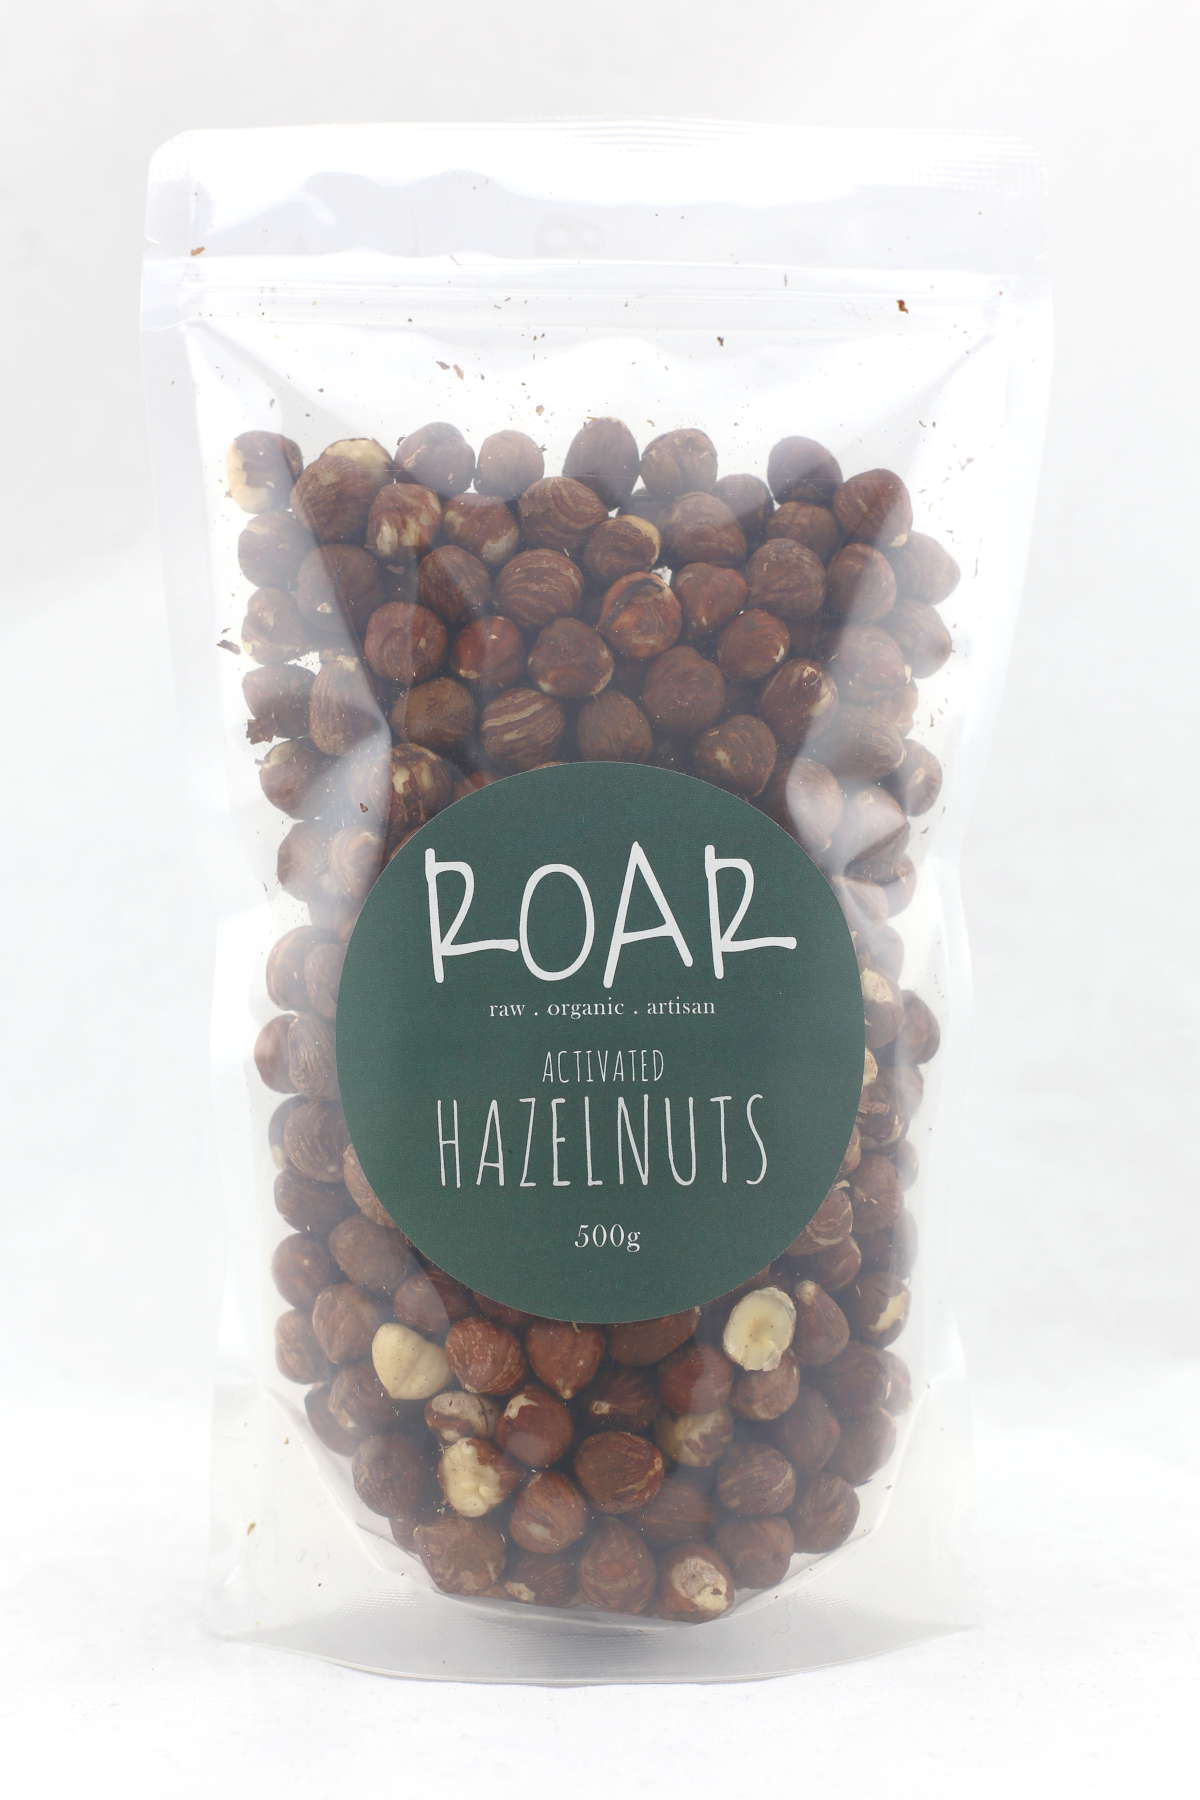 ROAR-organic-hazelnuts-activated-500g-front.jpg